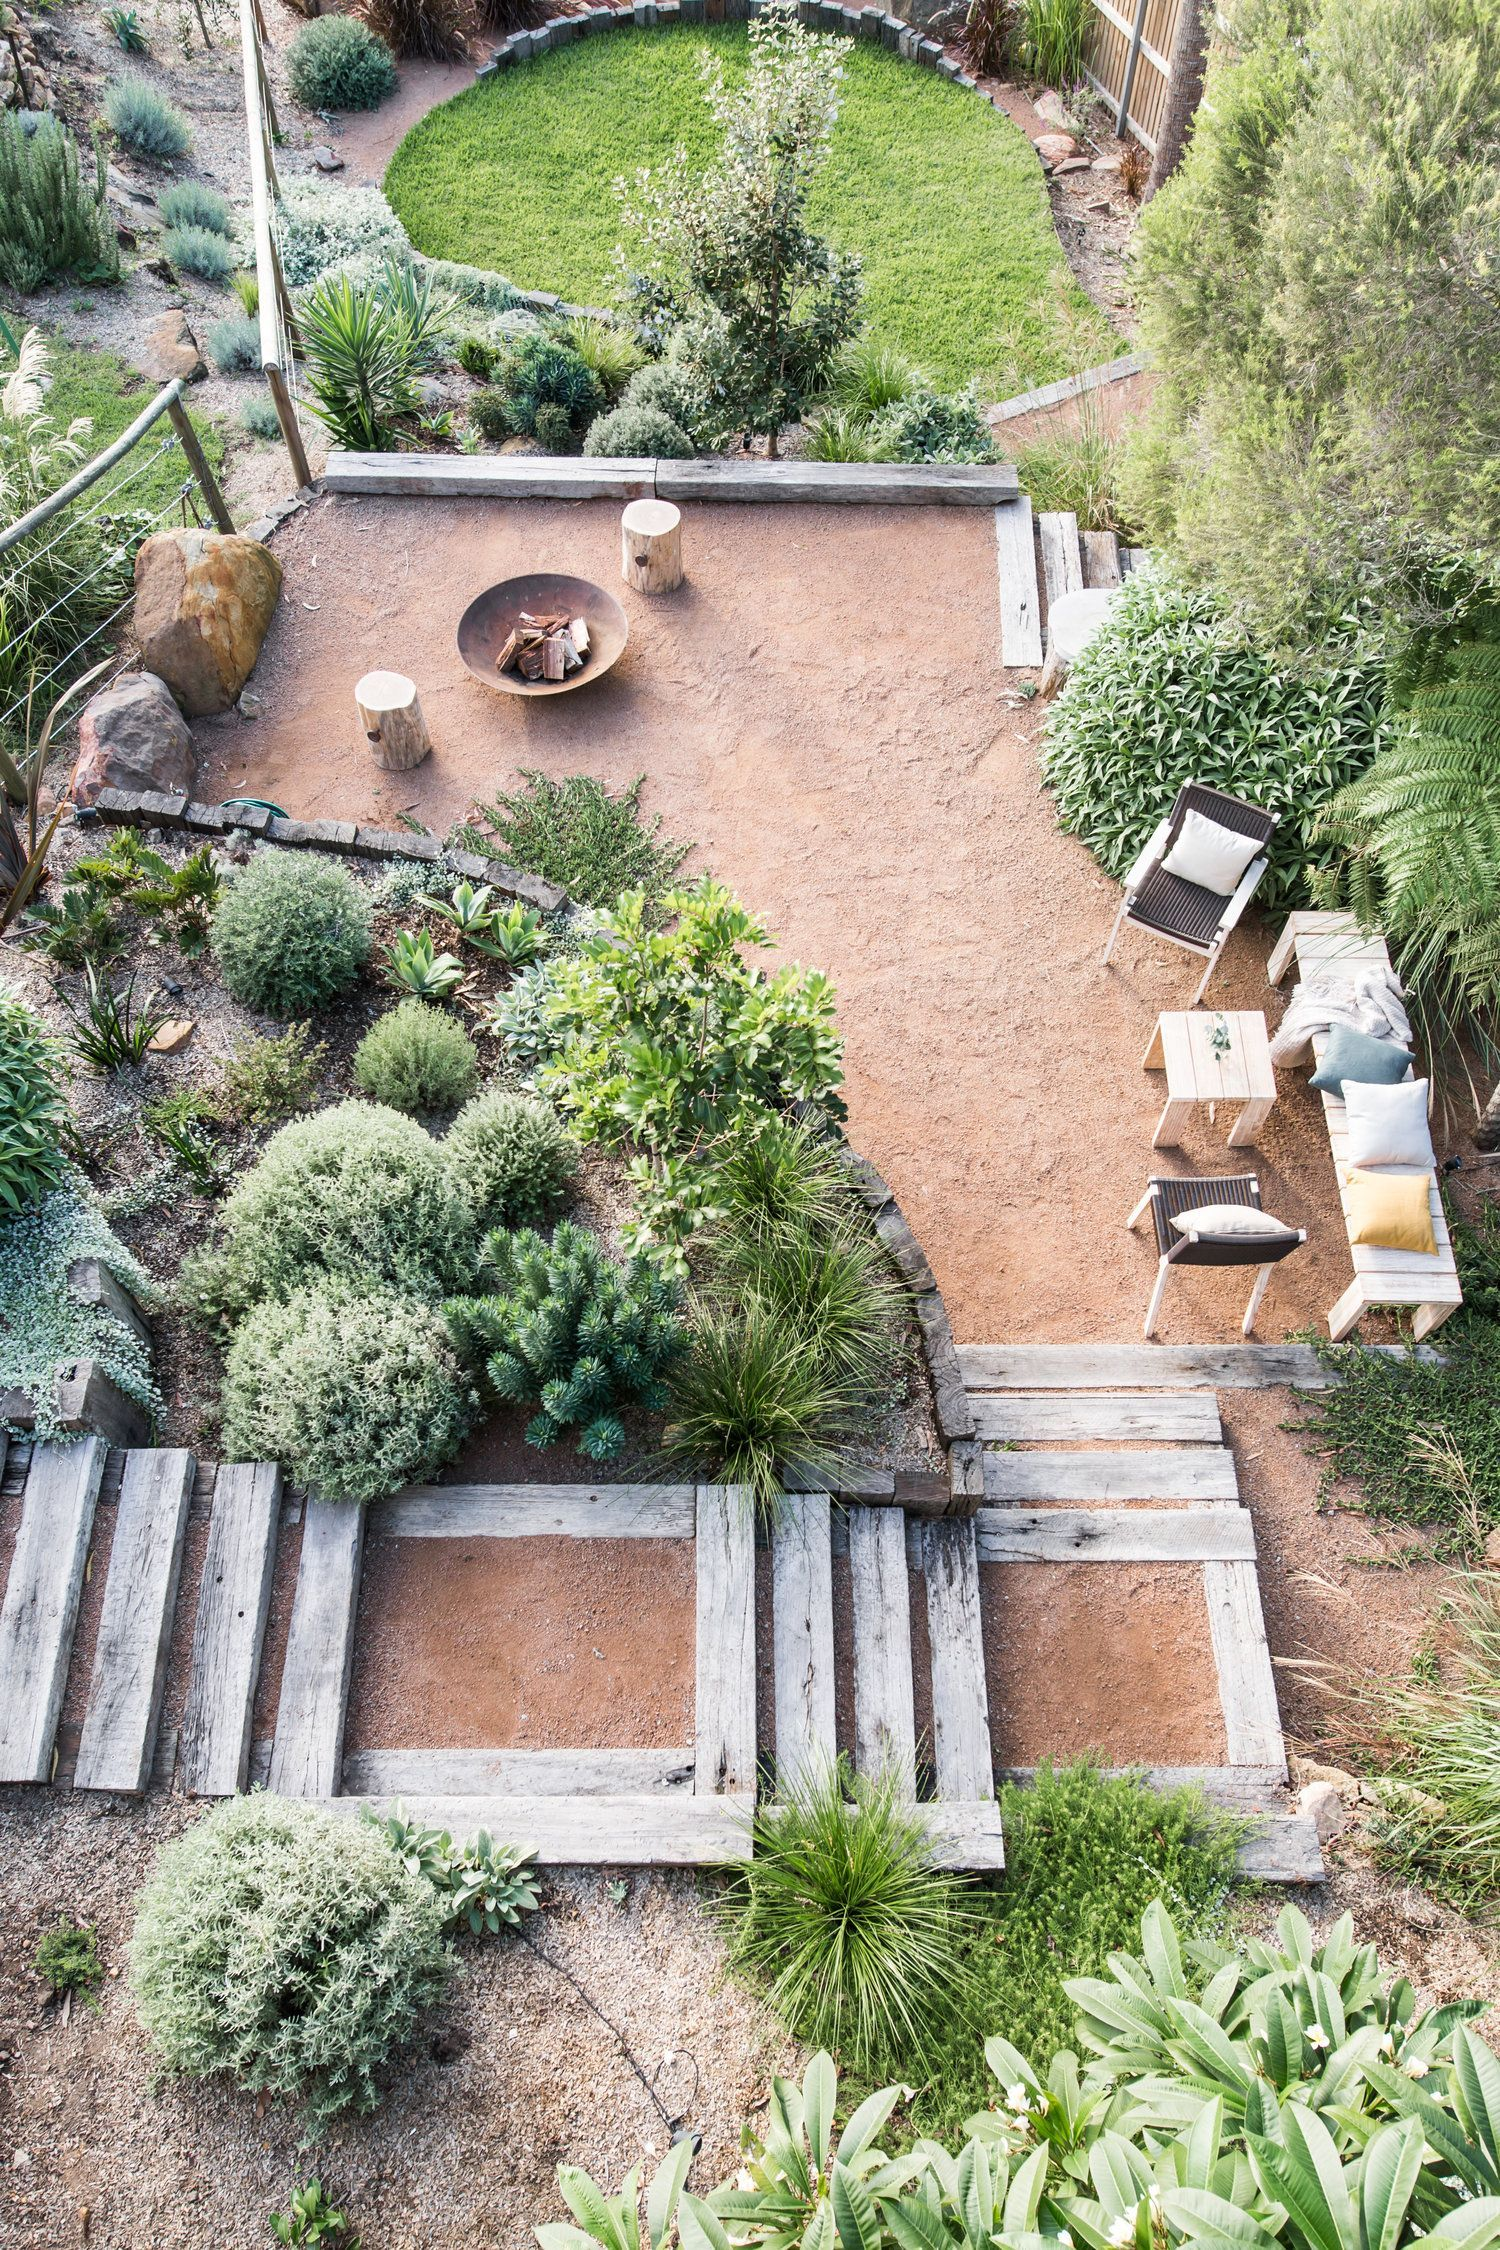 I love the approach Fig Landscapes have to Australian backyards. Natives and hardy sculptural plants, plus natural elements and textures with just a little bit of lawn to soften the space.